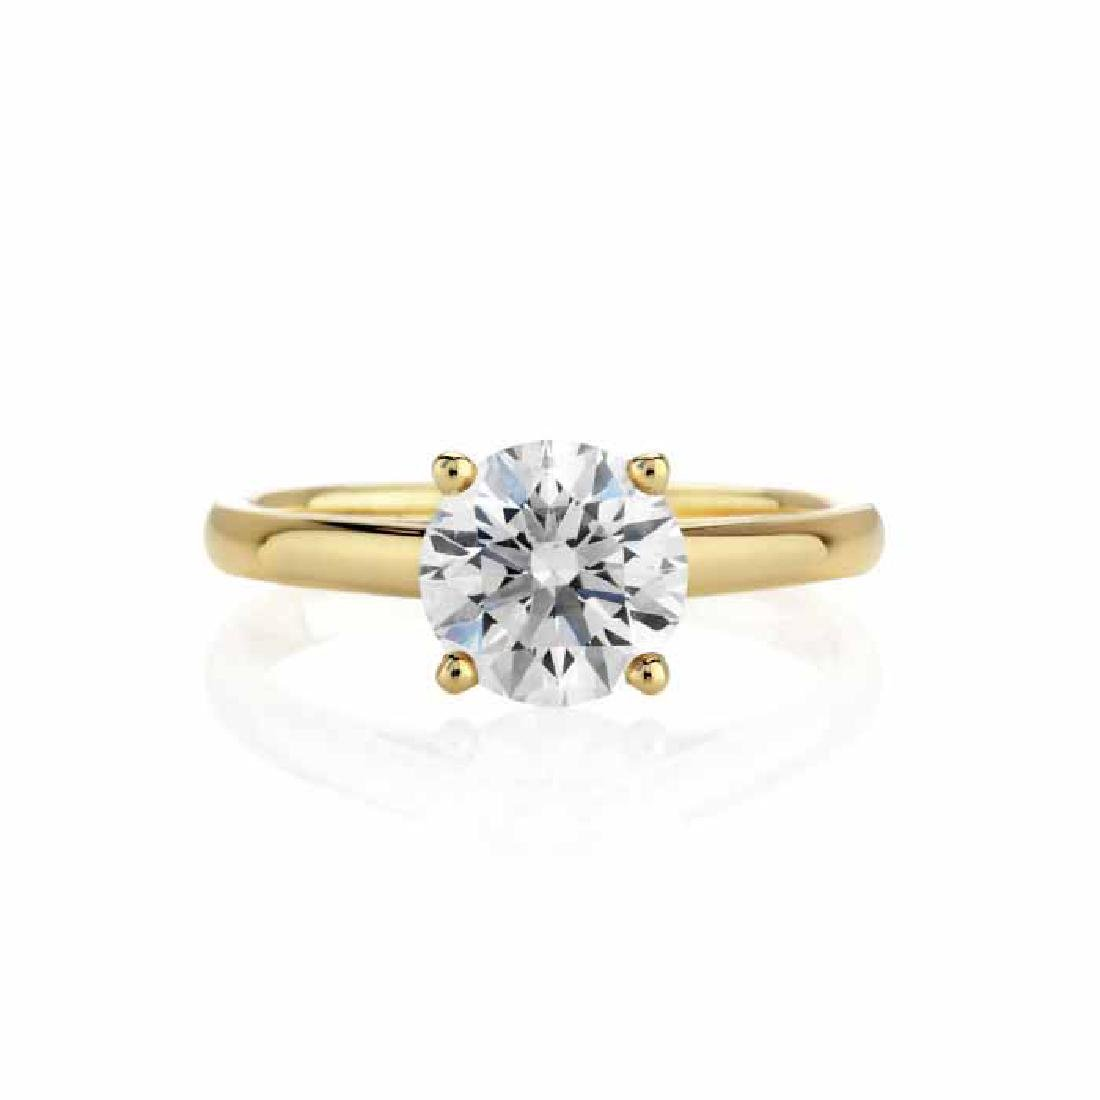 CERTIFIED 0.91 CTW G/SI2 ROUND DIAMOND SOLITAIRE RING I